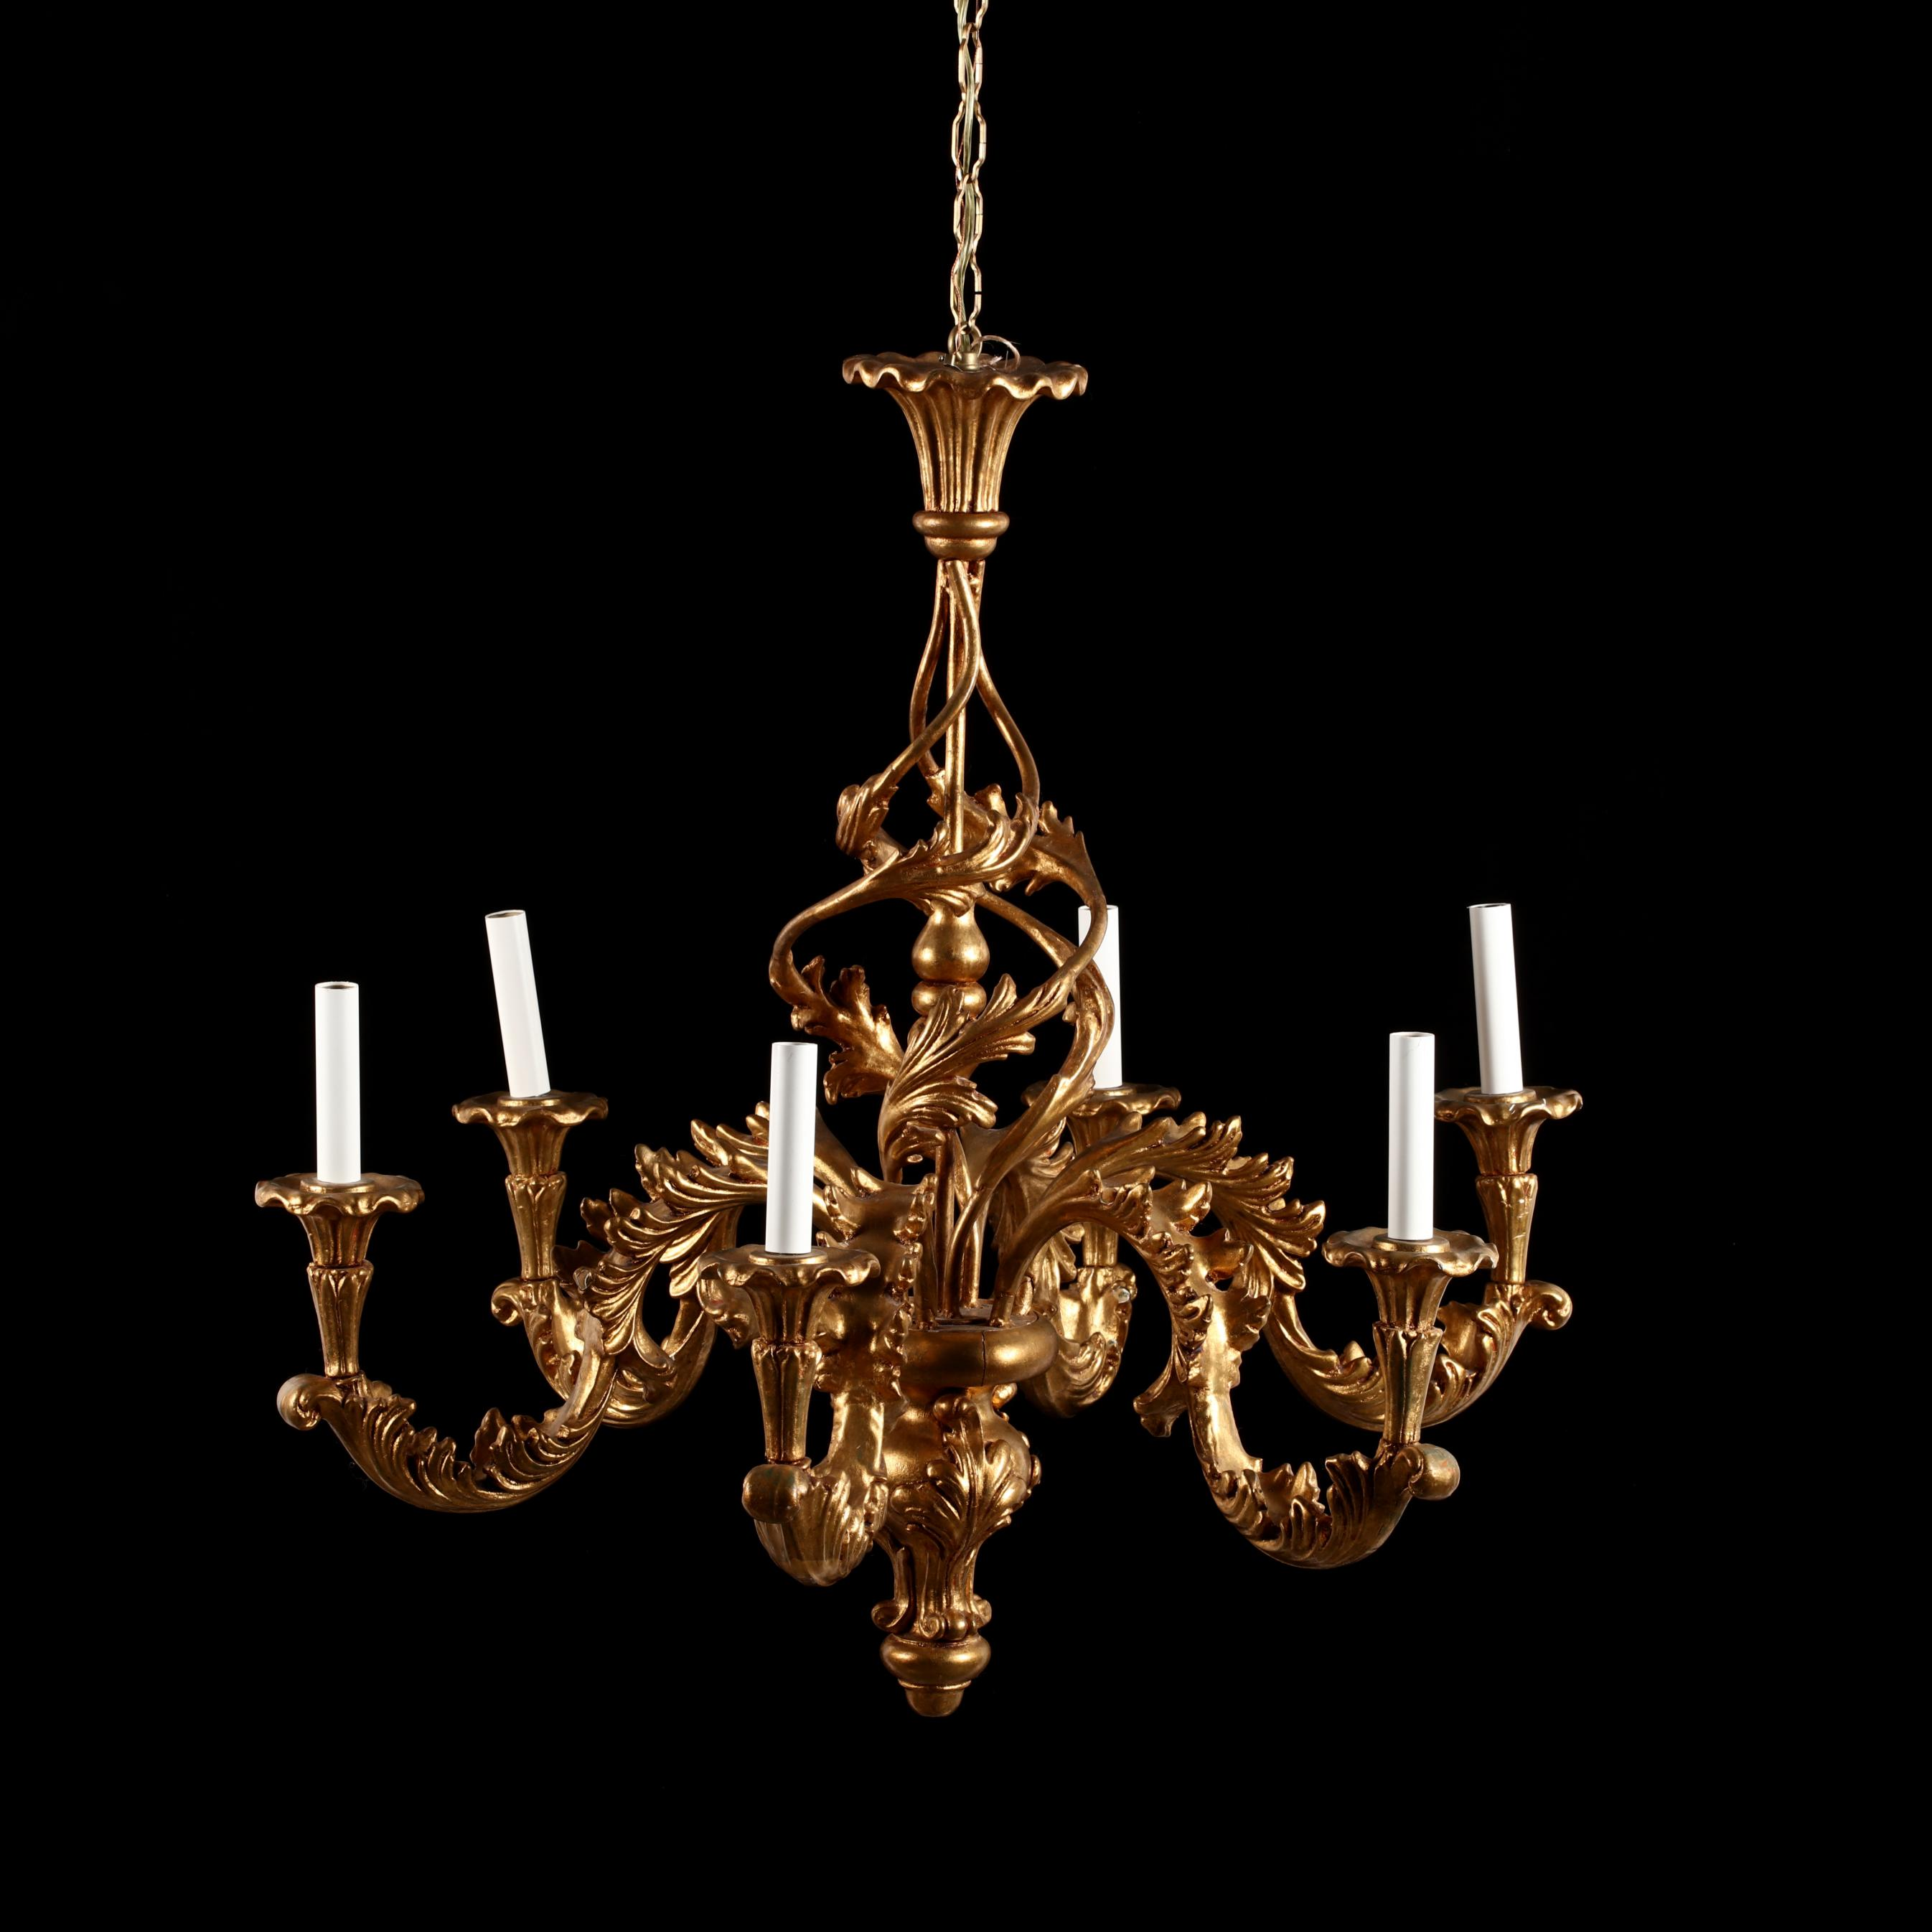 italian-baroque-style-carved-and-gilt-chandelier